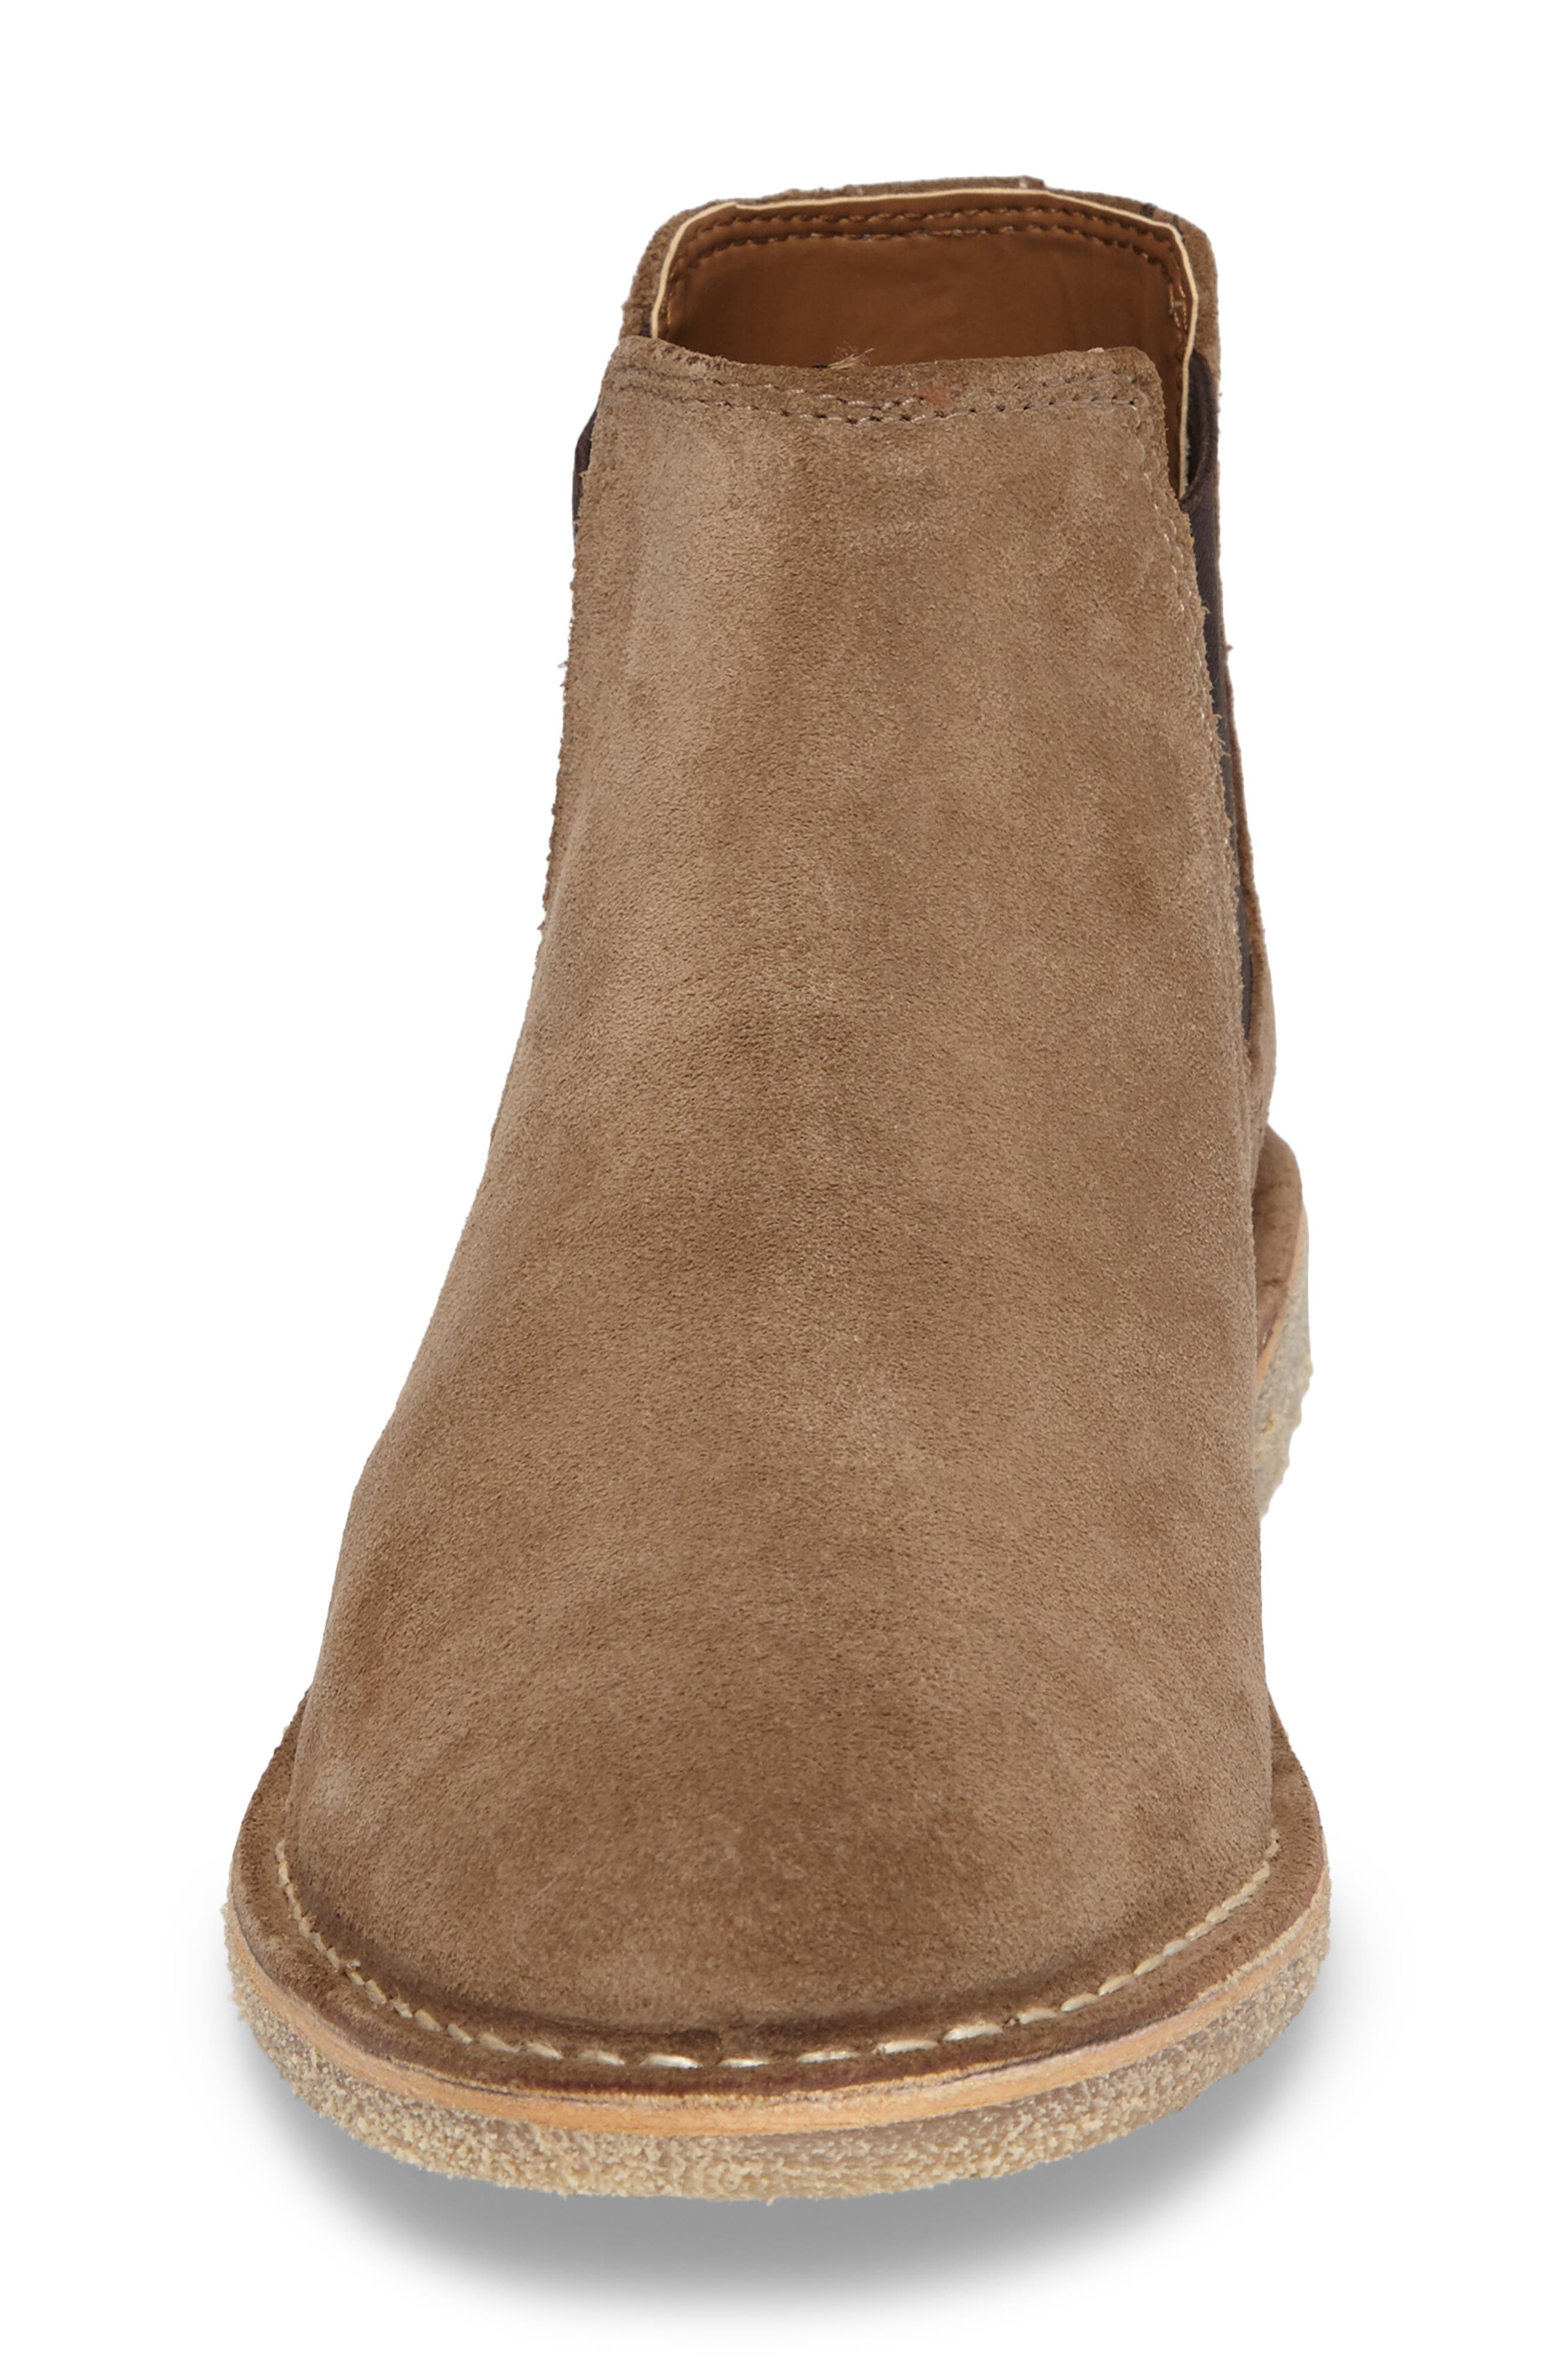 Kenneth Cole Reaction Chelsea Boot,                             Alternate thumbnail 4, color,                             205